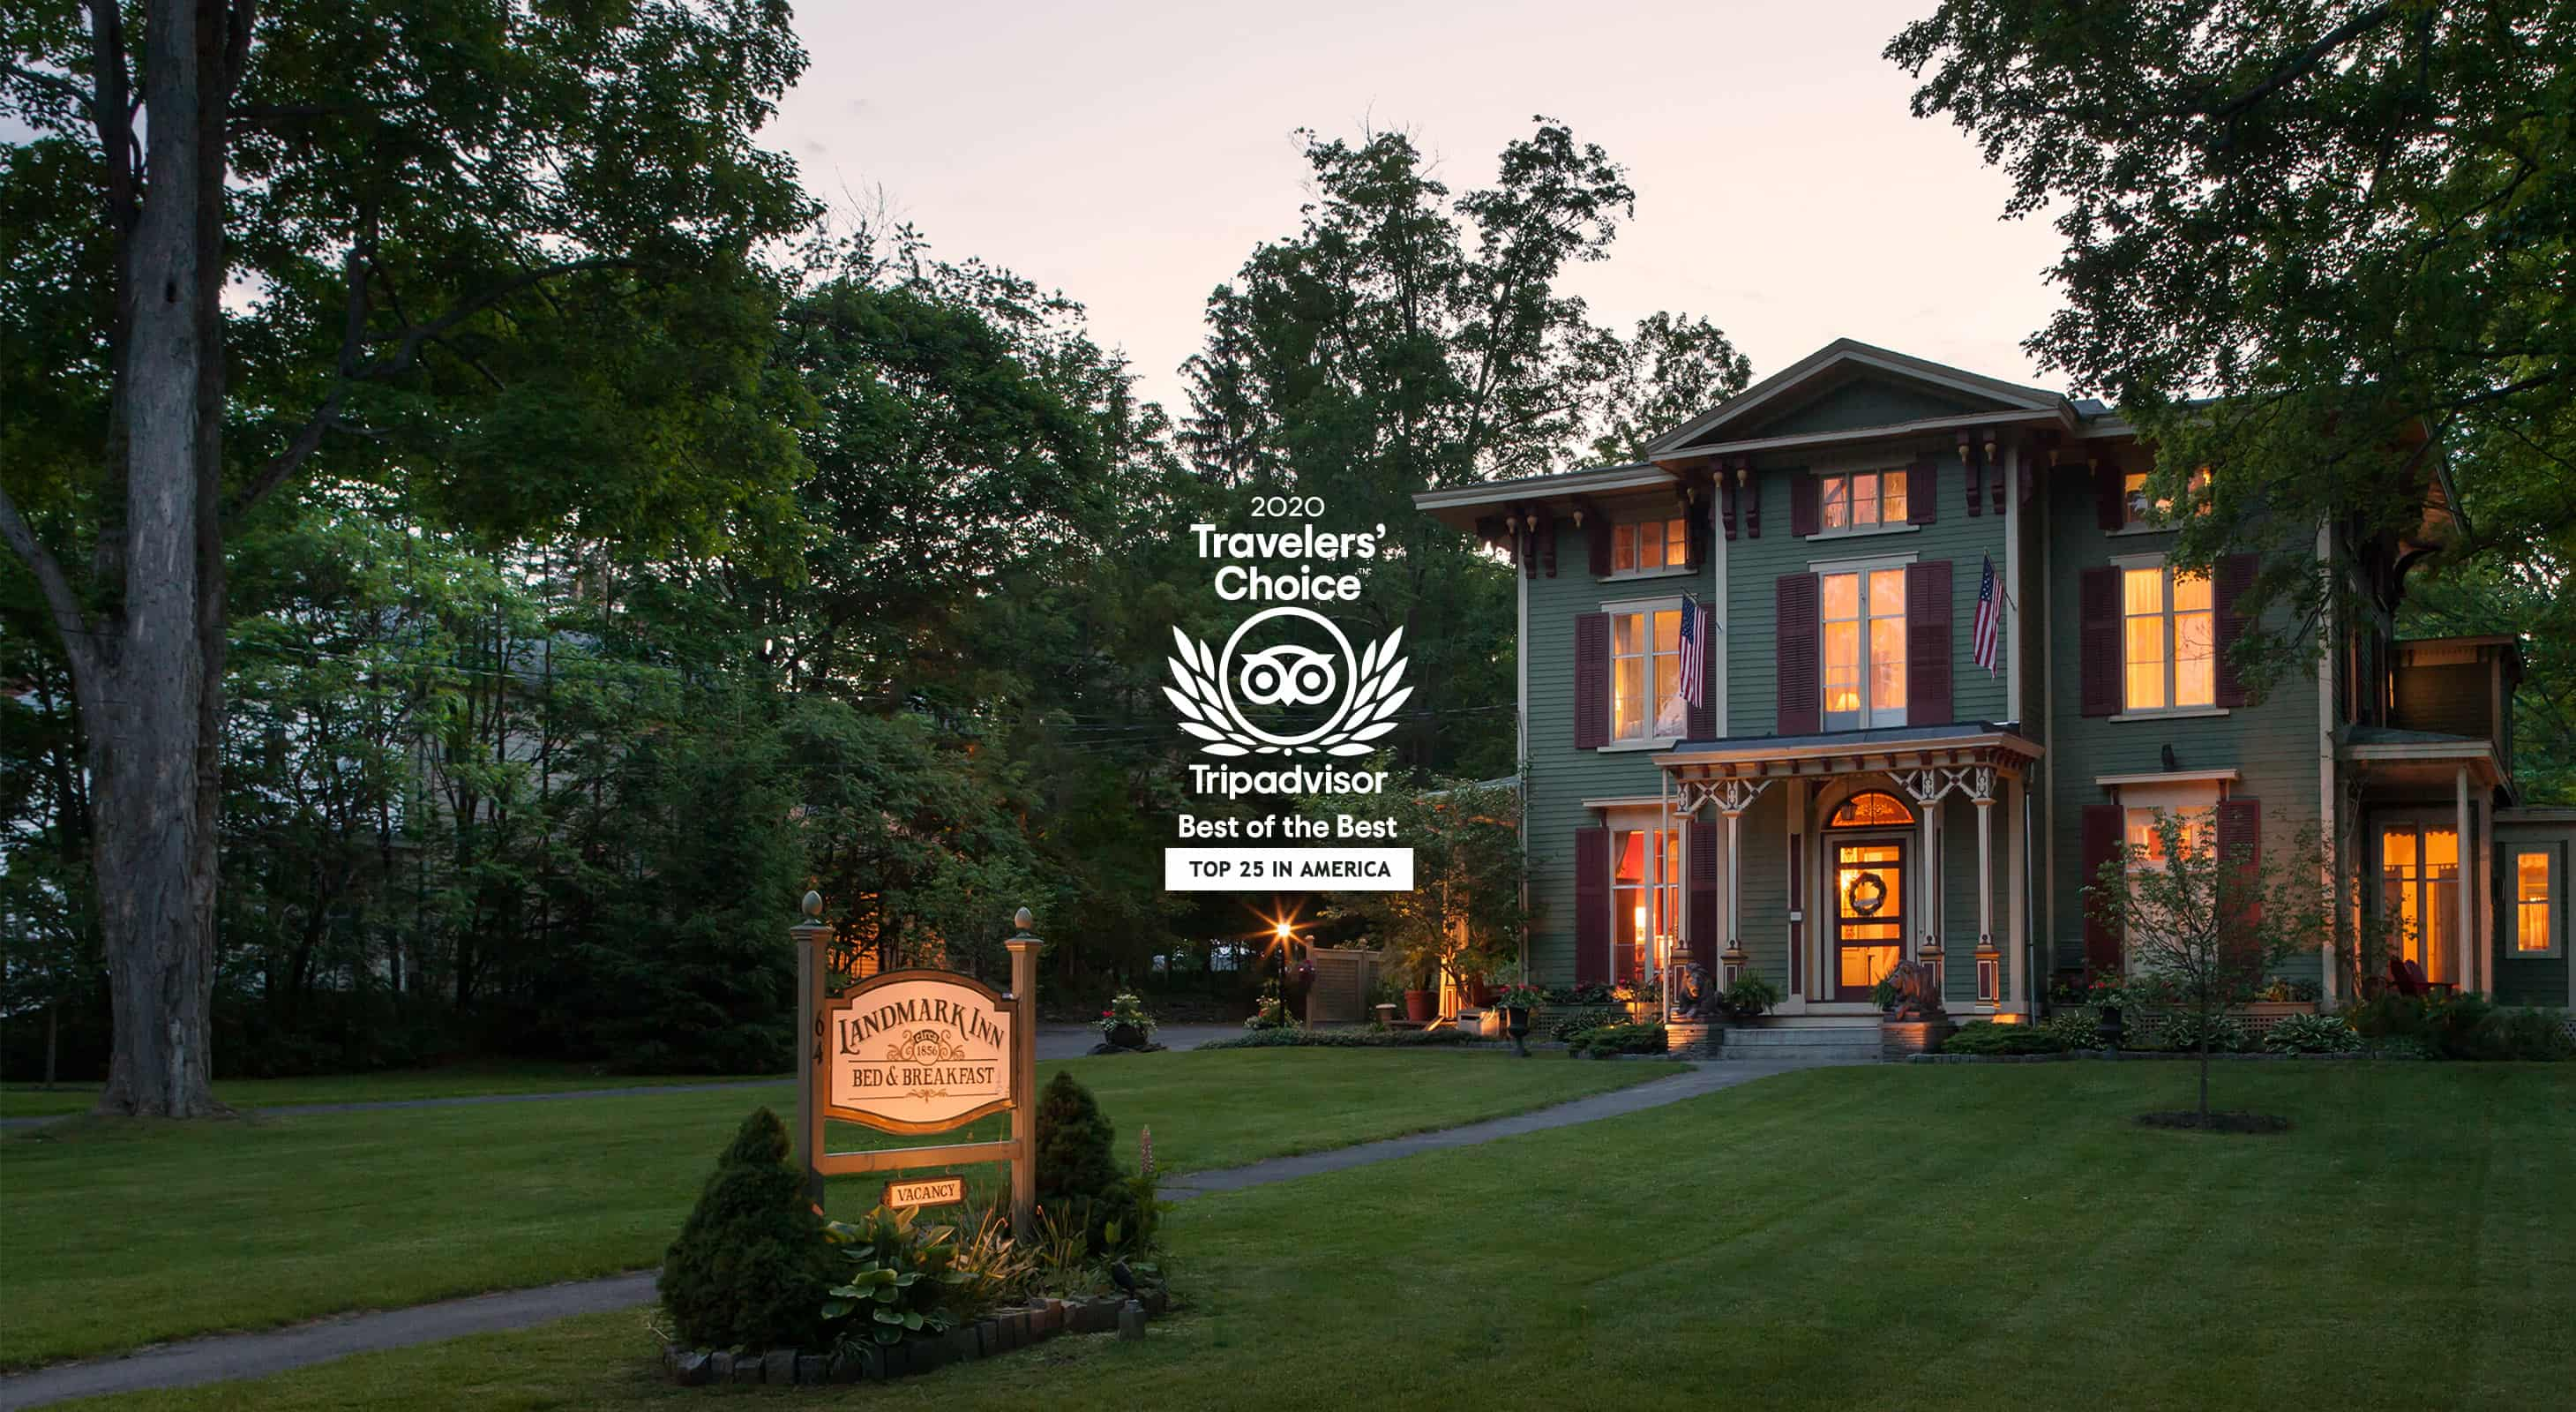 Exterior of inn at dusk with 2020 Travelers Choice logo from TripAdvisor